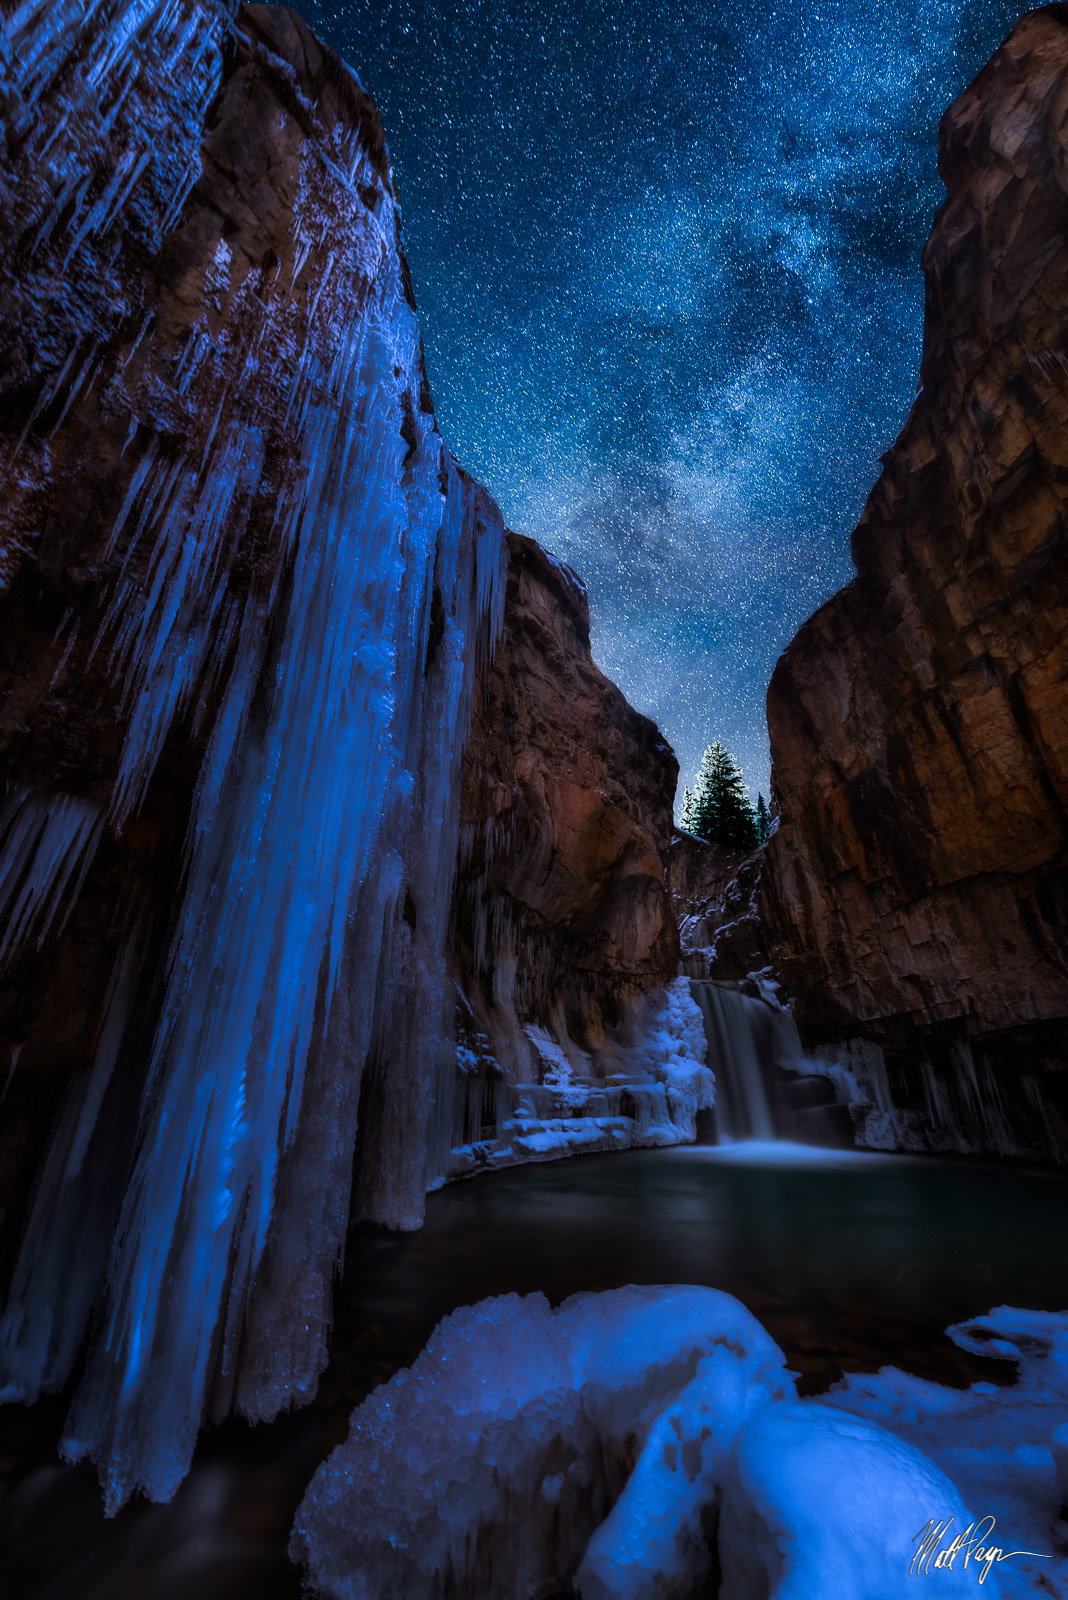 Colorado, Durango, Ice, Landscape, Milky Way, Mysterious, Night, Snow, Stars, Waterfall, Winter, ice, San Juan Mountains, photo